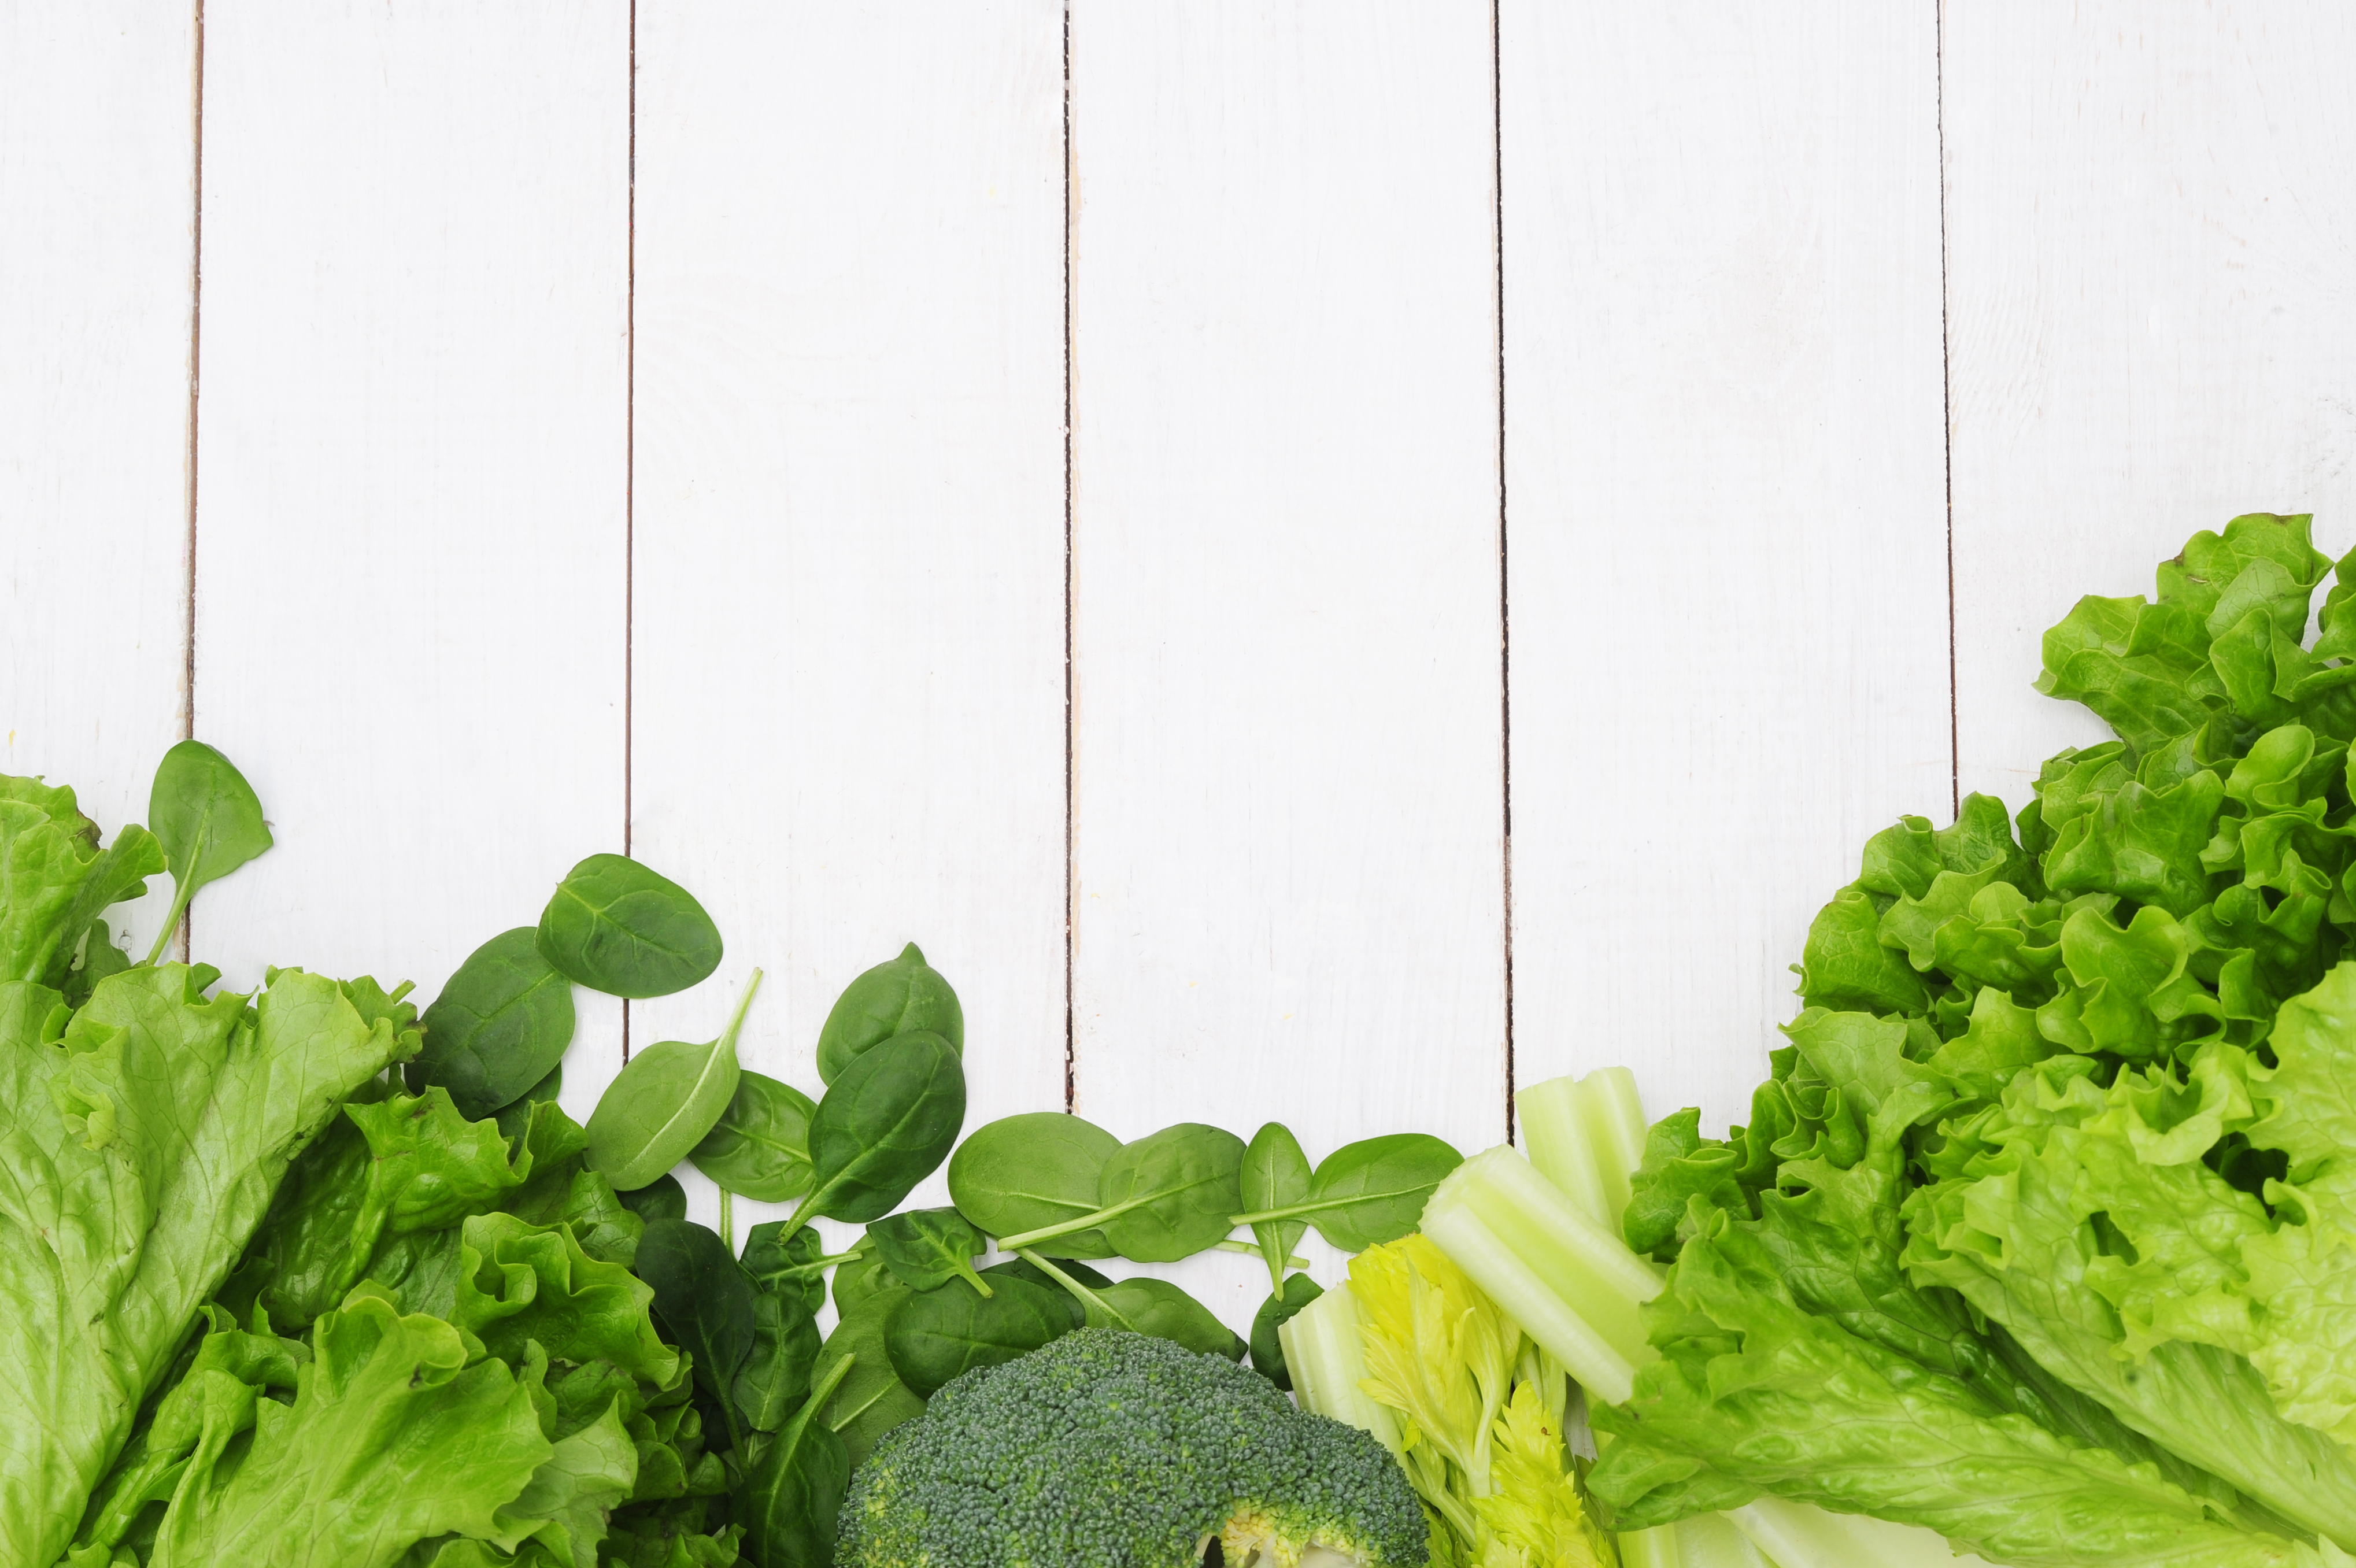 background-made-vegetables-healthy-food-concept